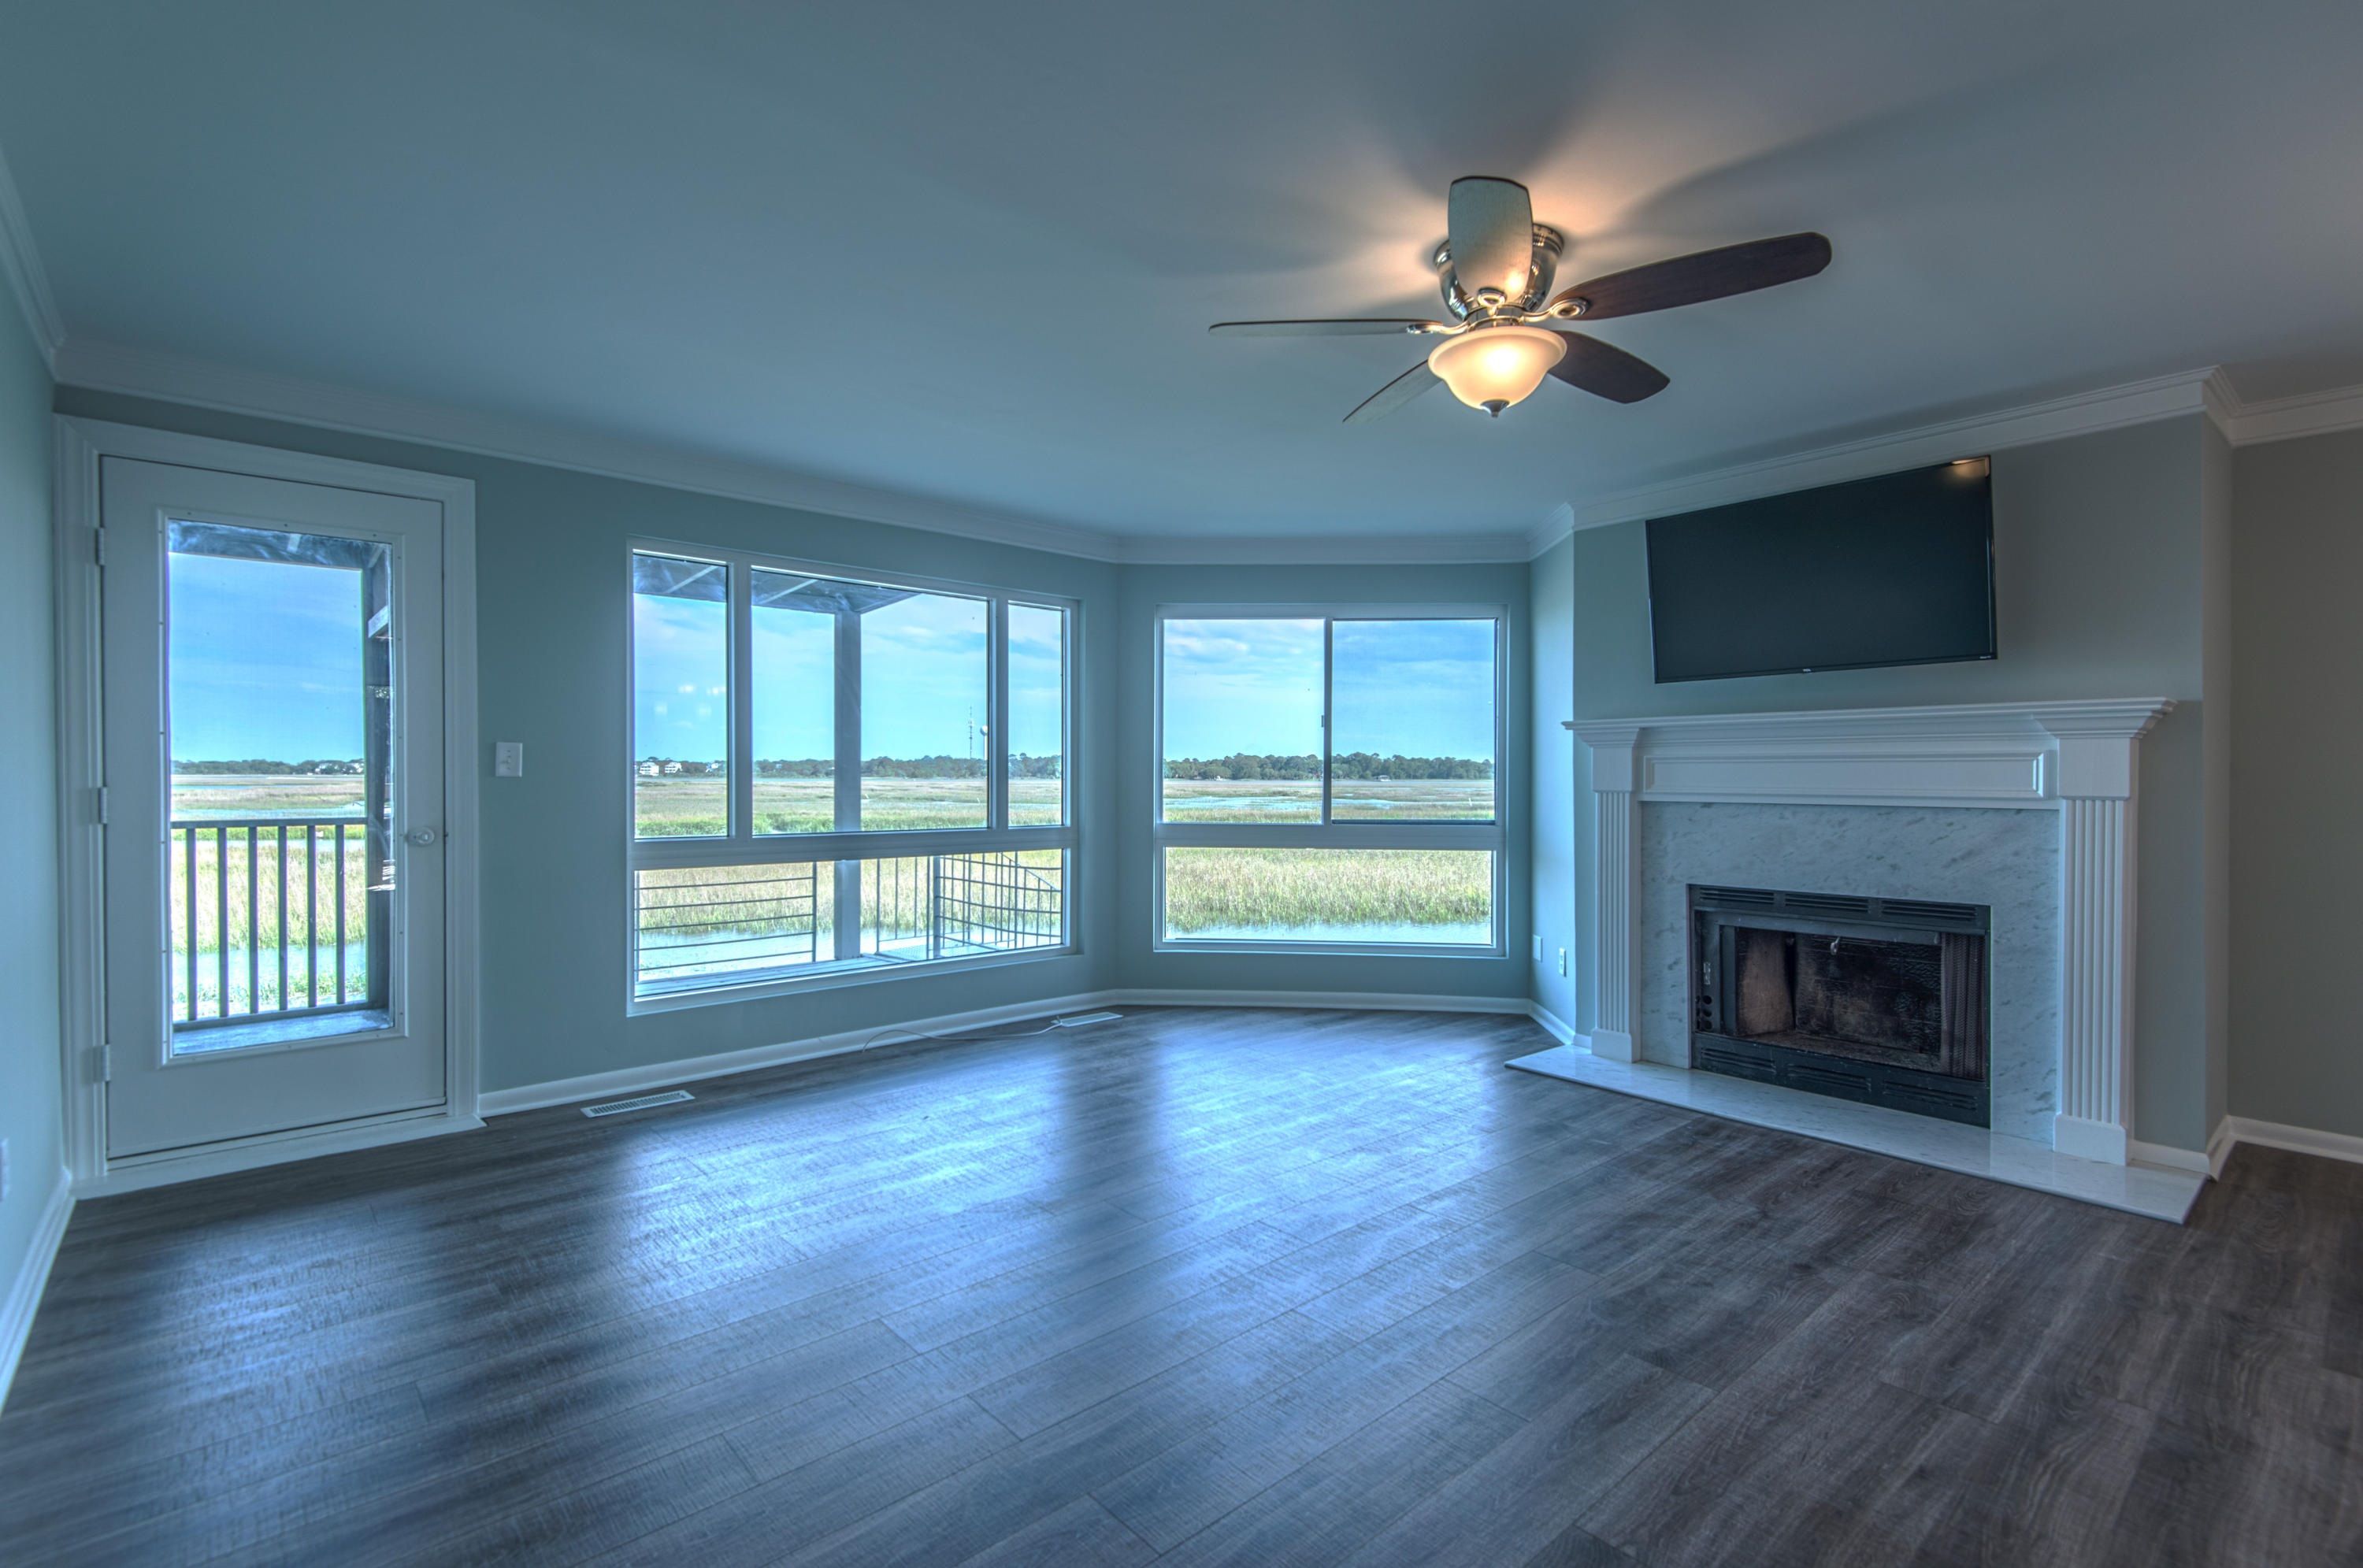 Little Oak Island Homes For Sale - 251 Little Oak, Folly Beach, SC - 23